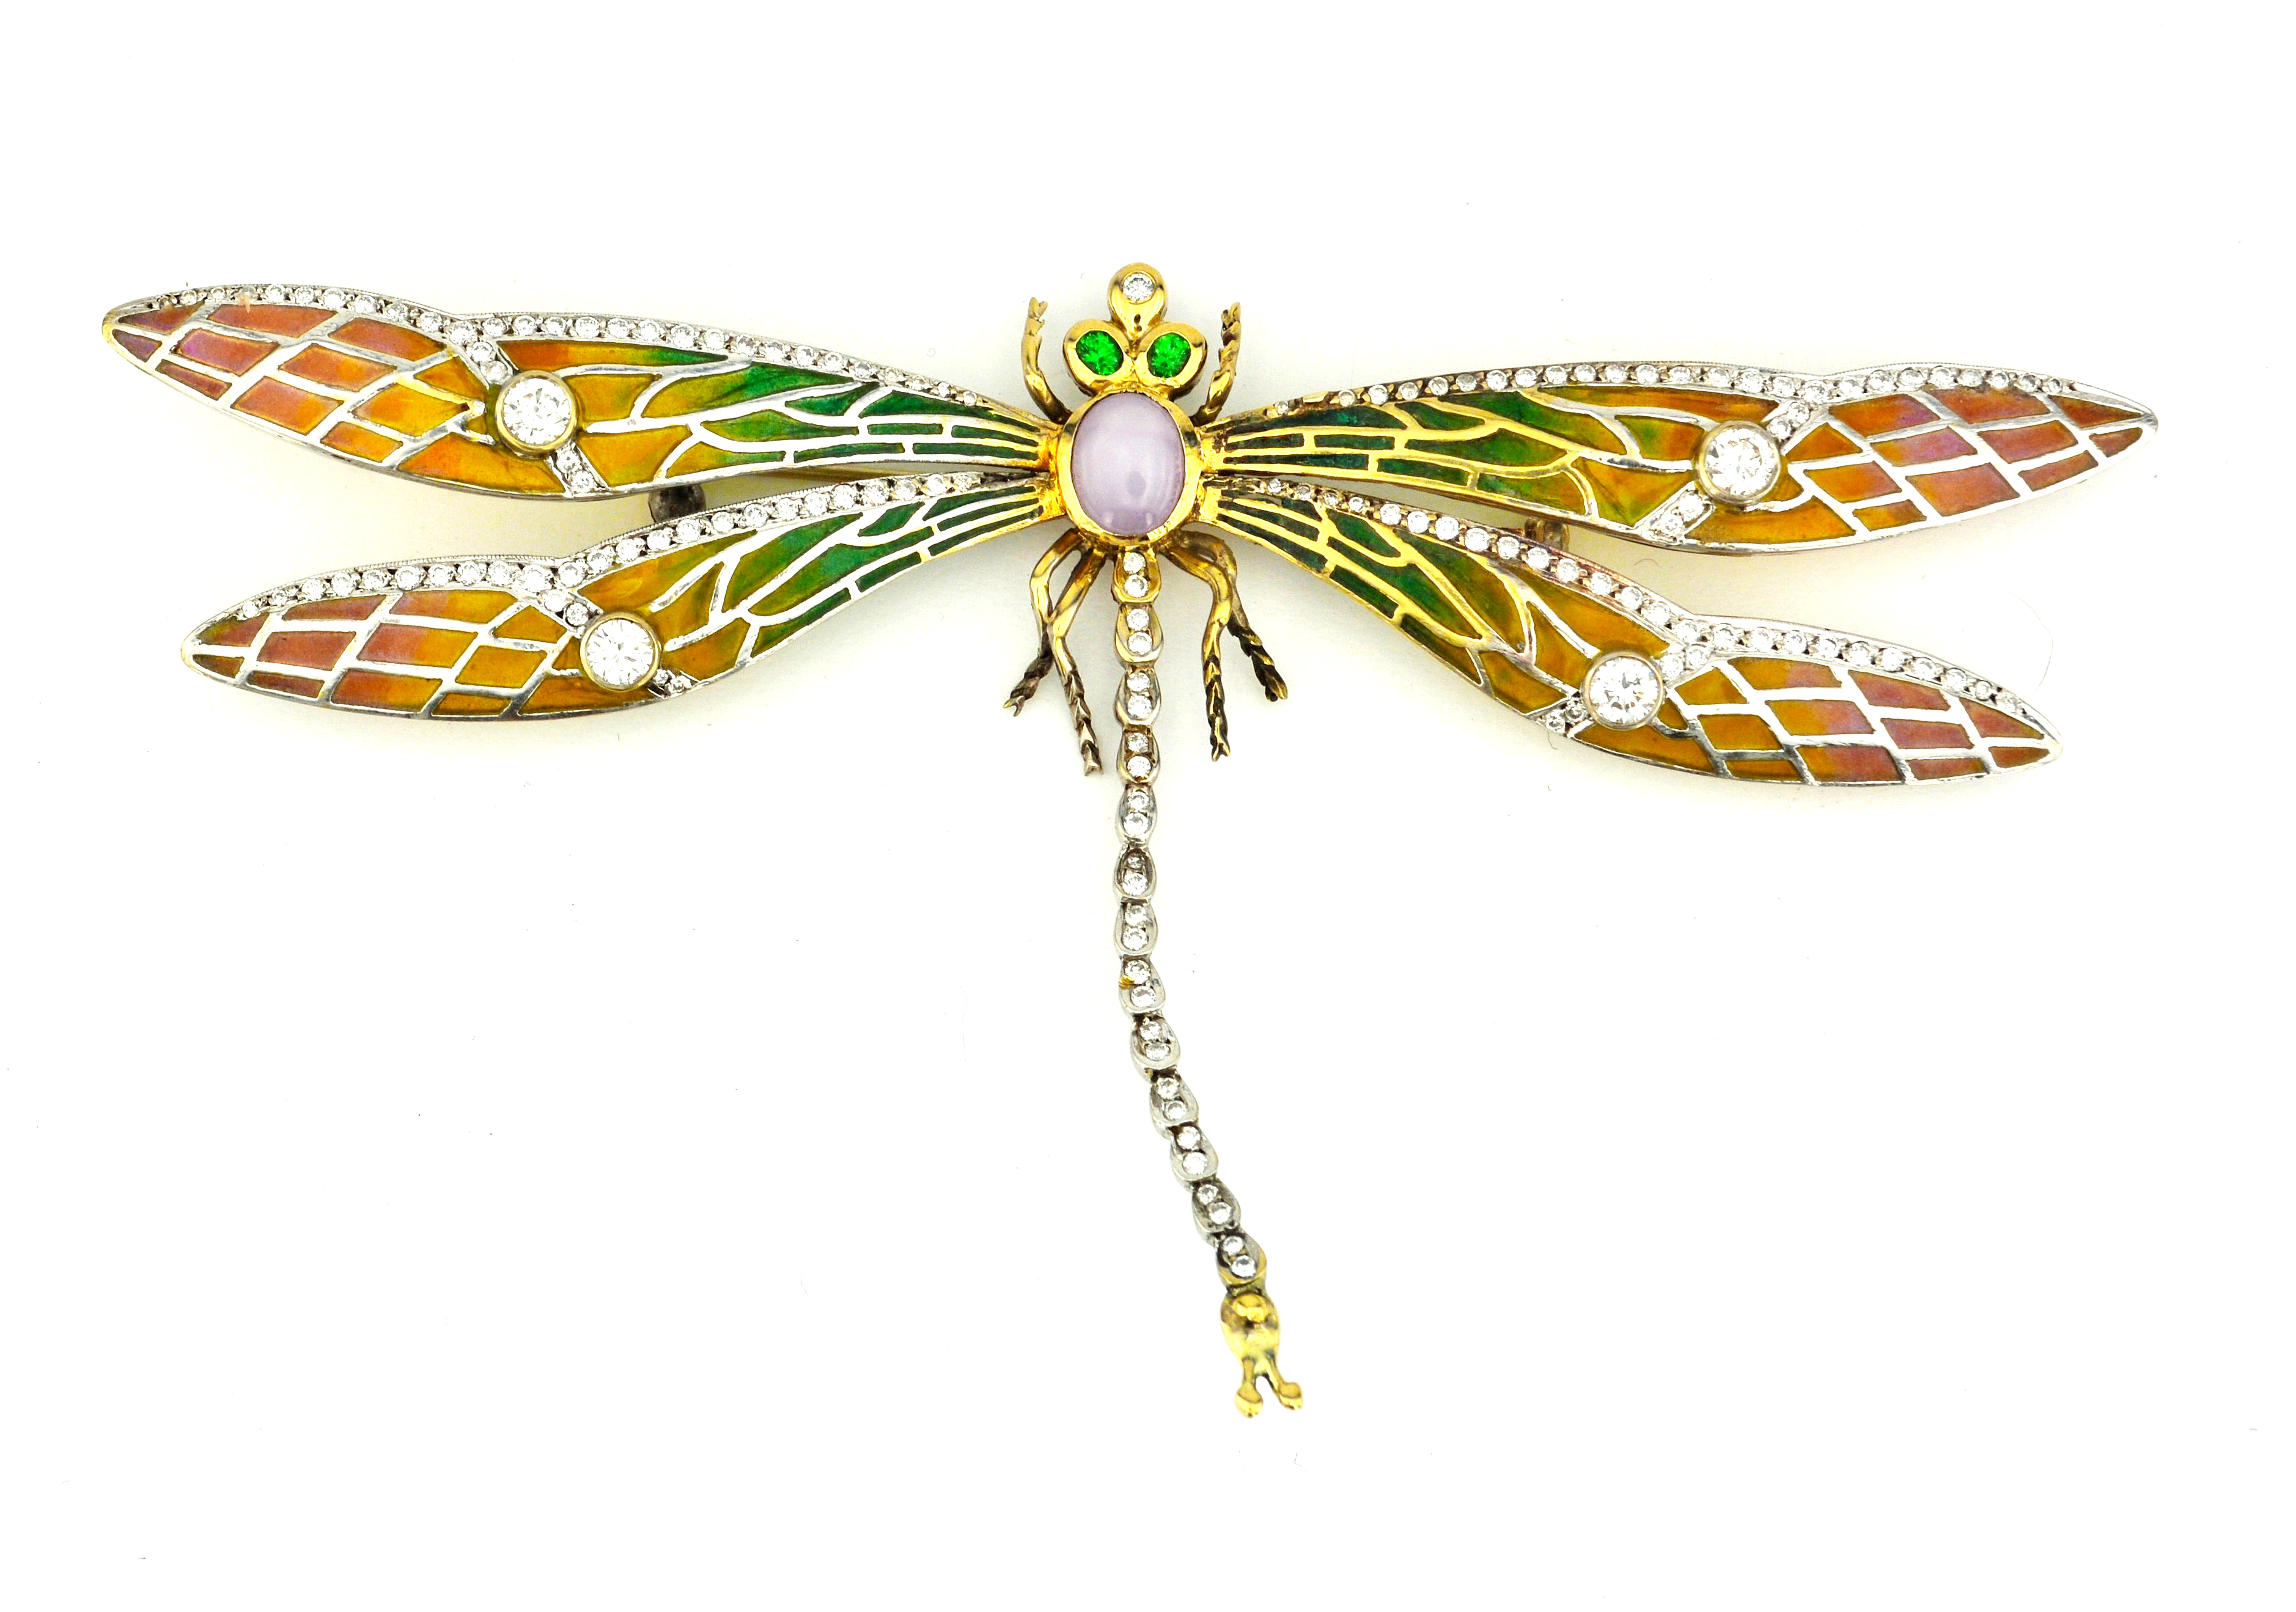 Dazzling Dragonfly Pin